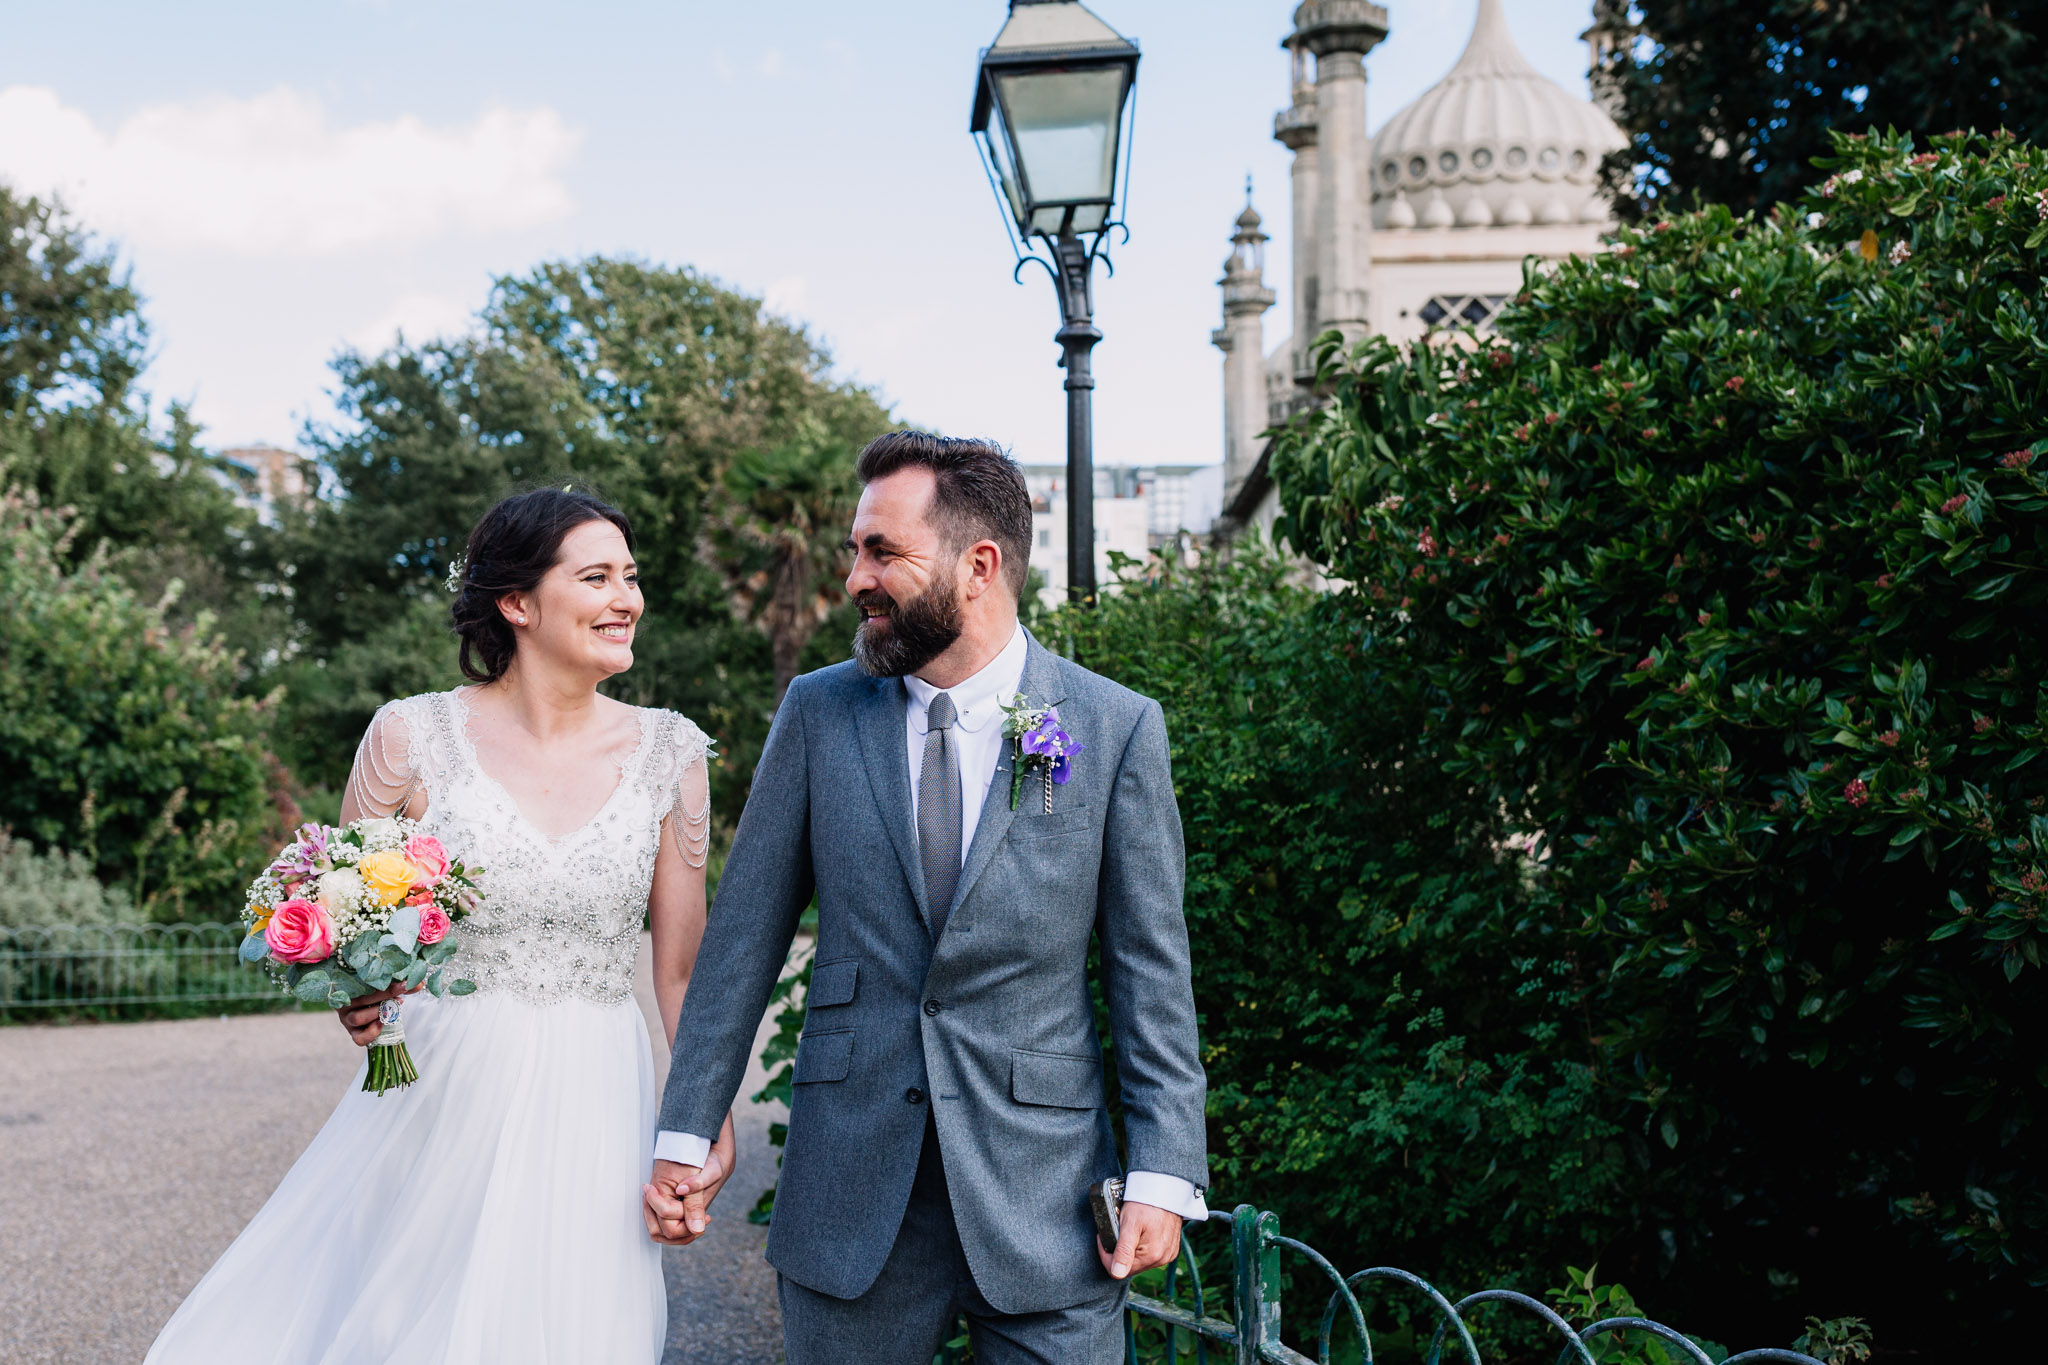 brighton pavilion wedding